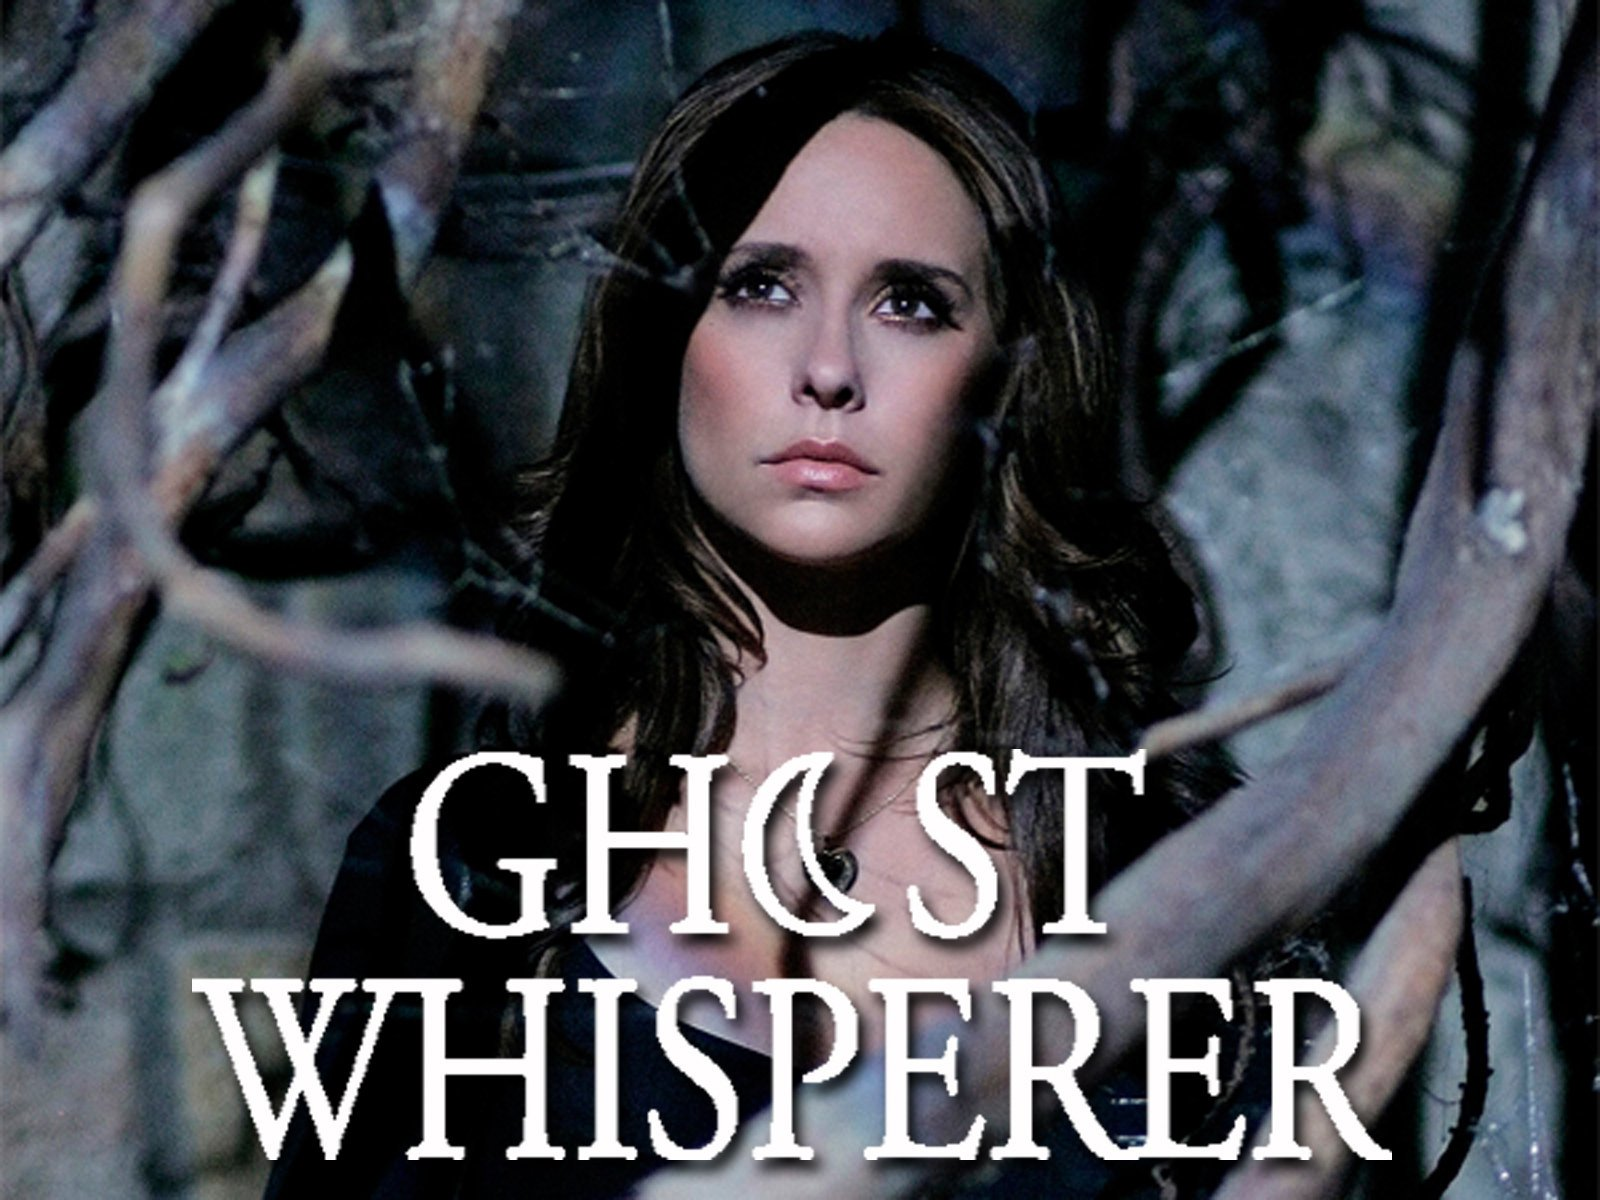 ghost whisperer season 2 episode 14 watch online